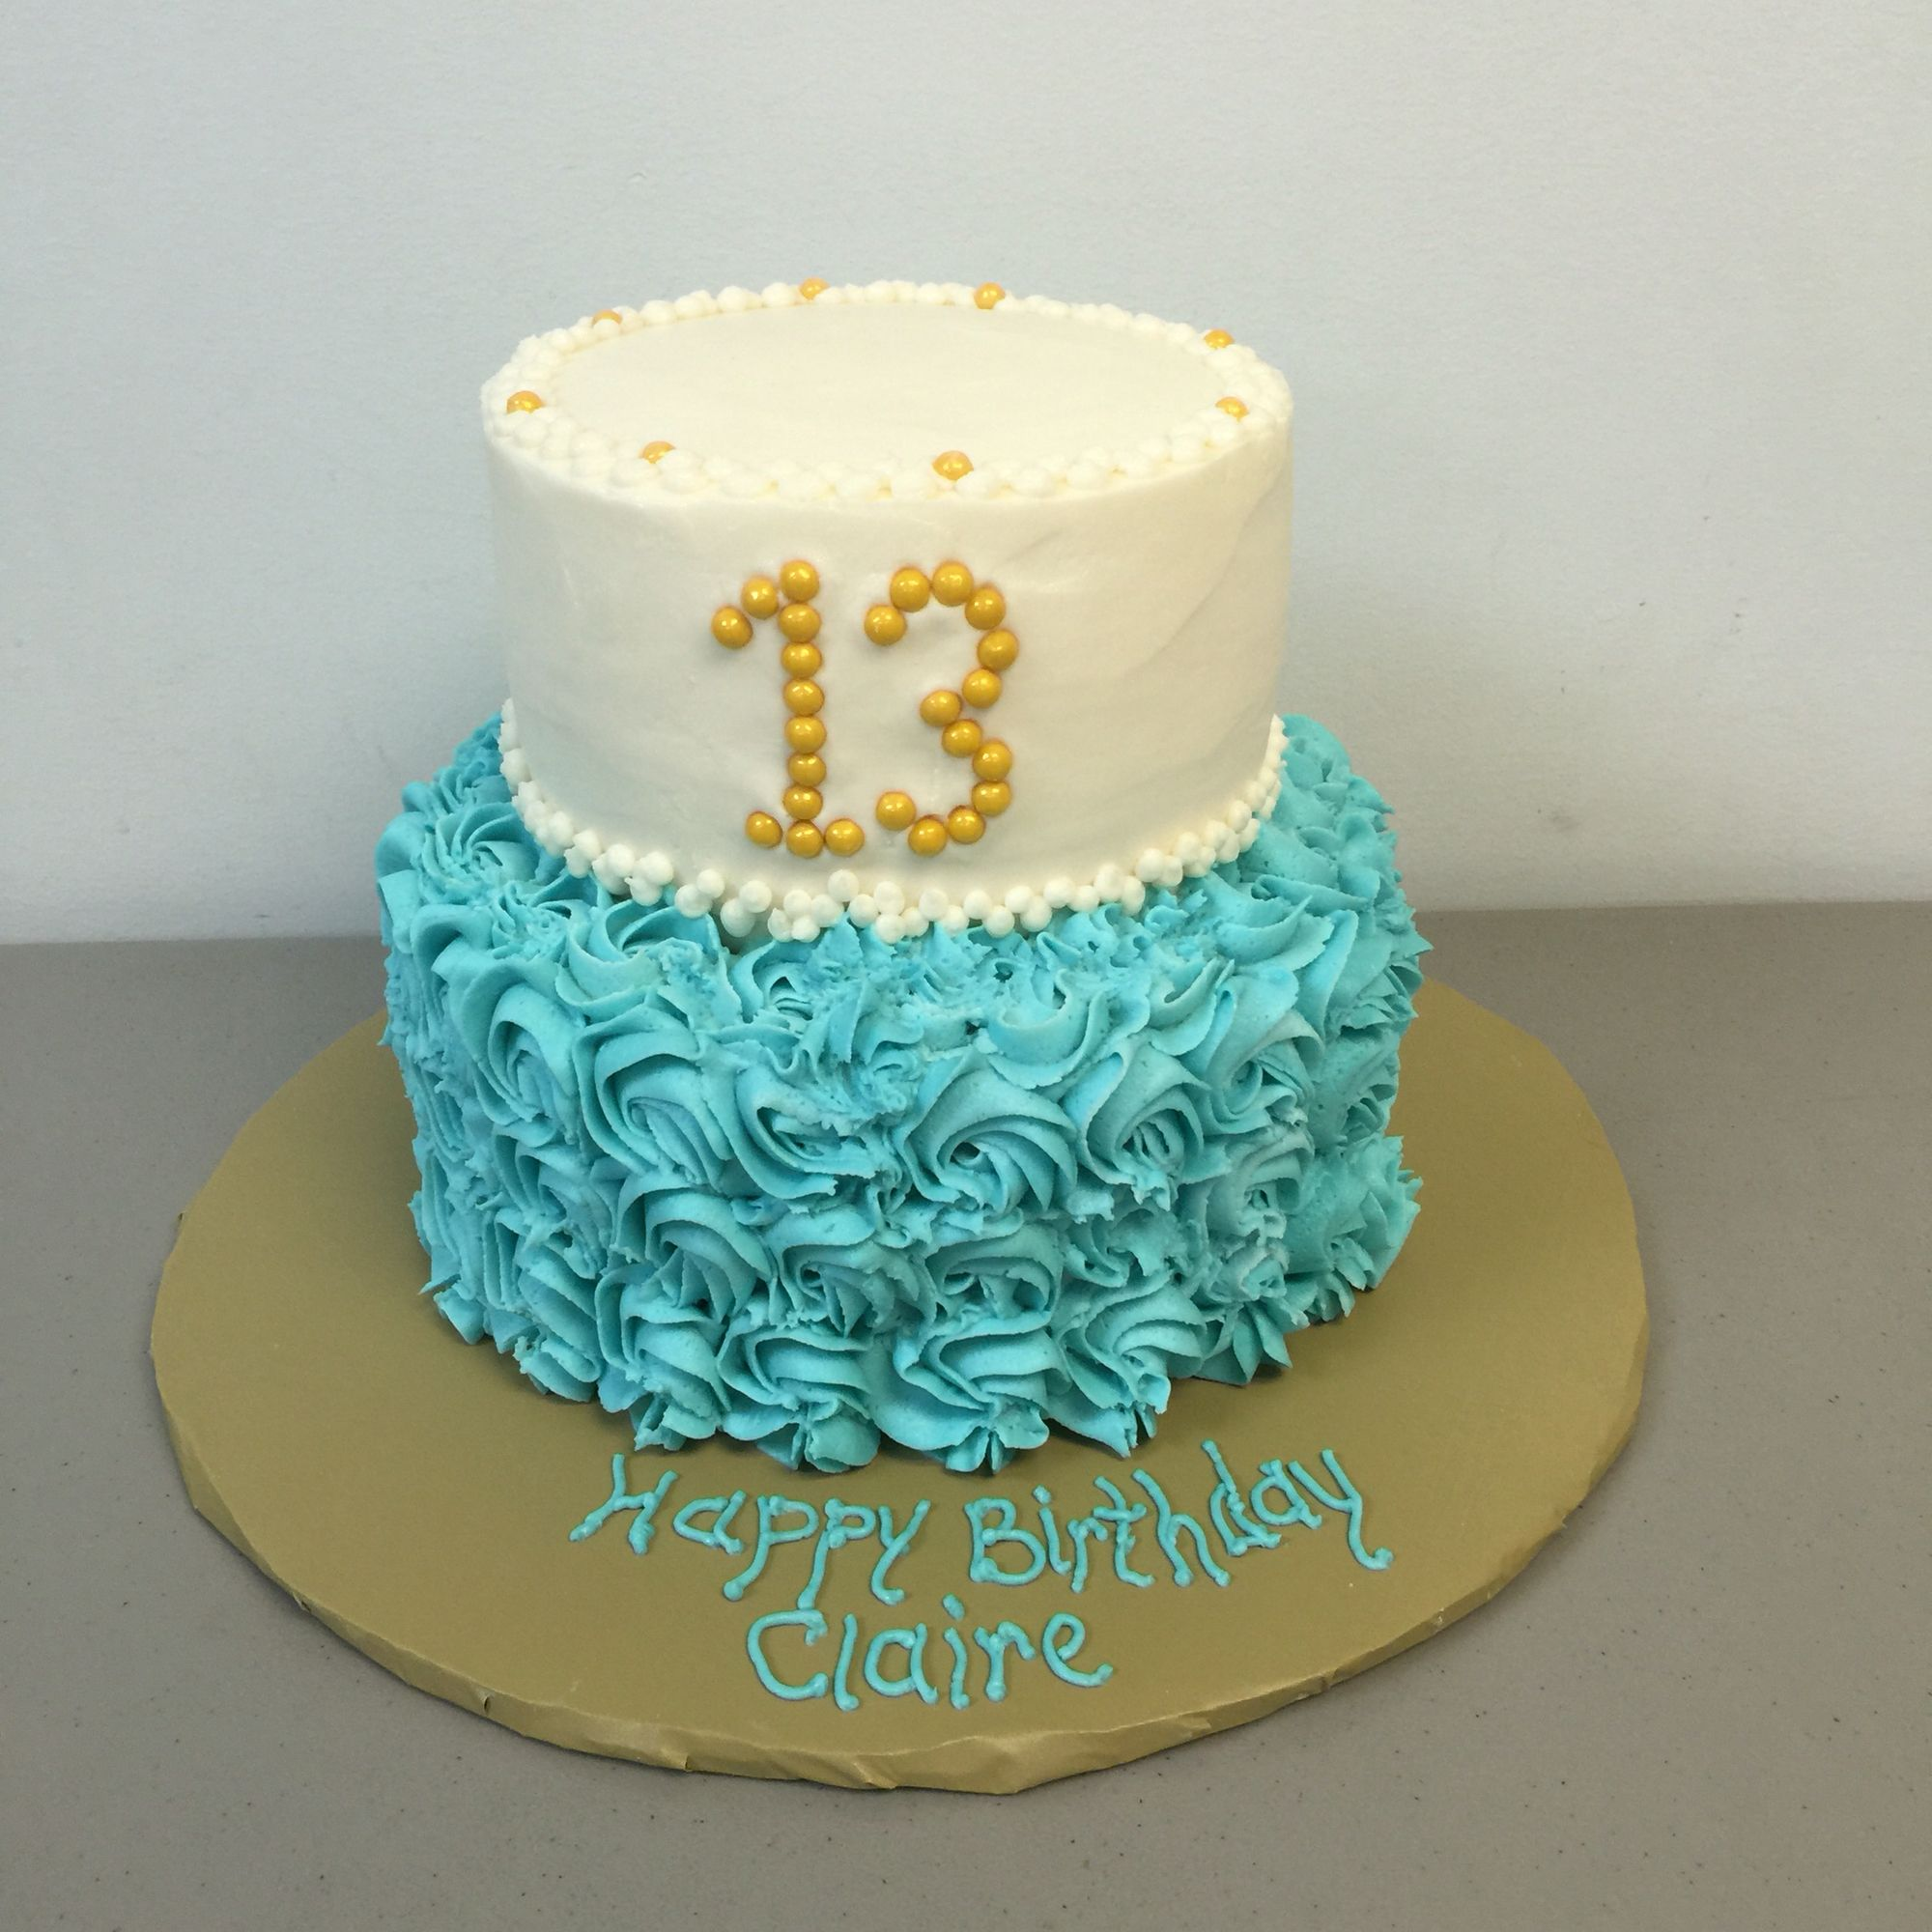 Fine 13 Year Old Birthday Cake With Images 13Th Birthday Cake Funny Birthday Cards Online Inifodamsfinfo